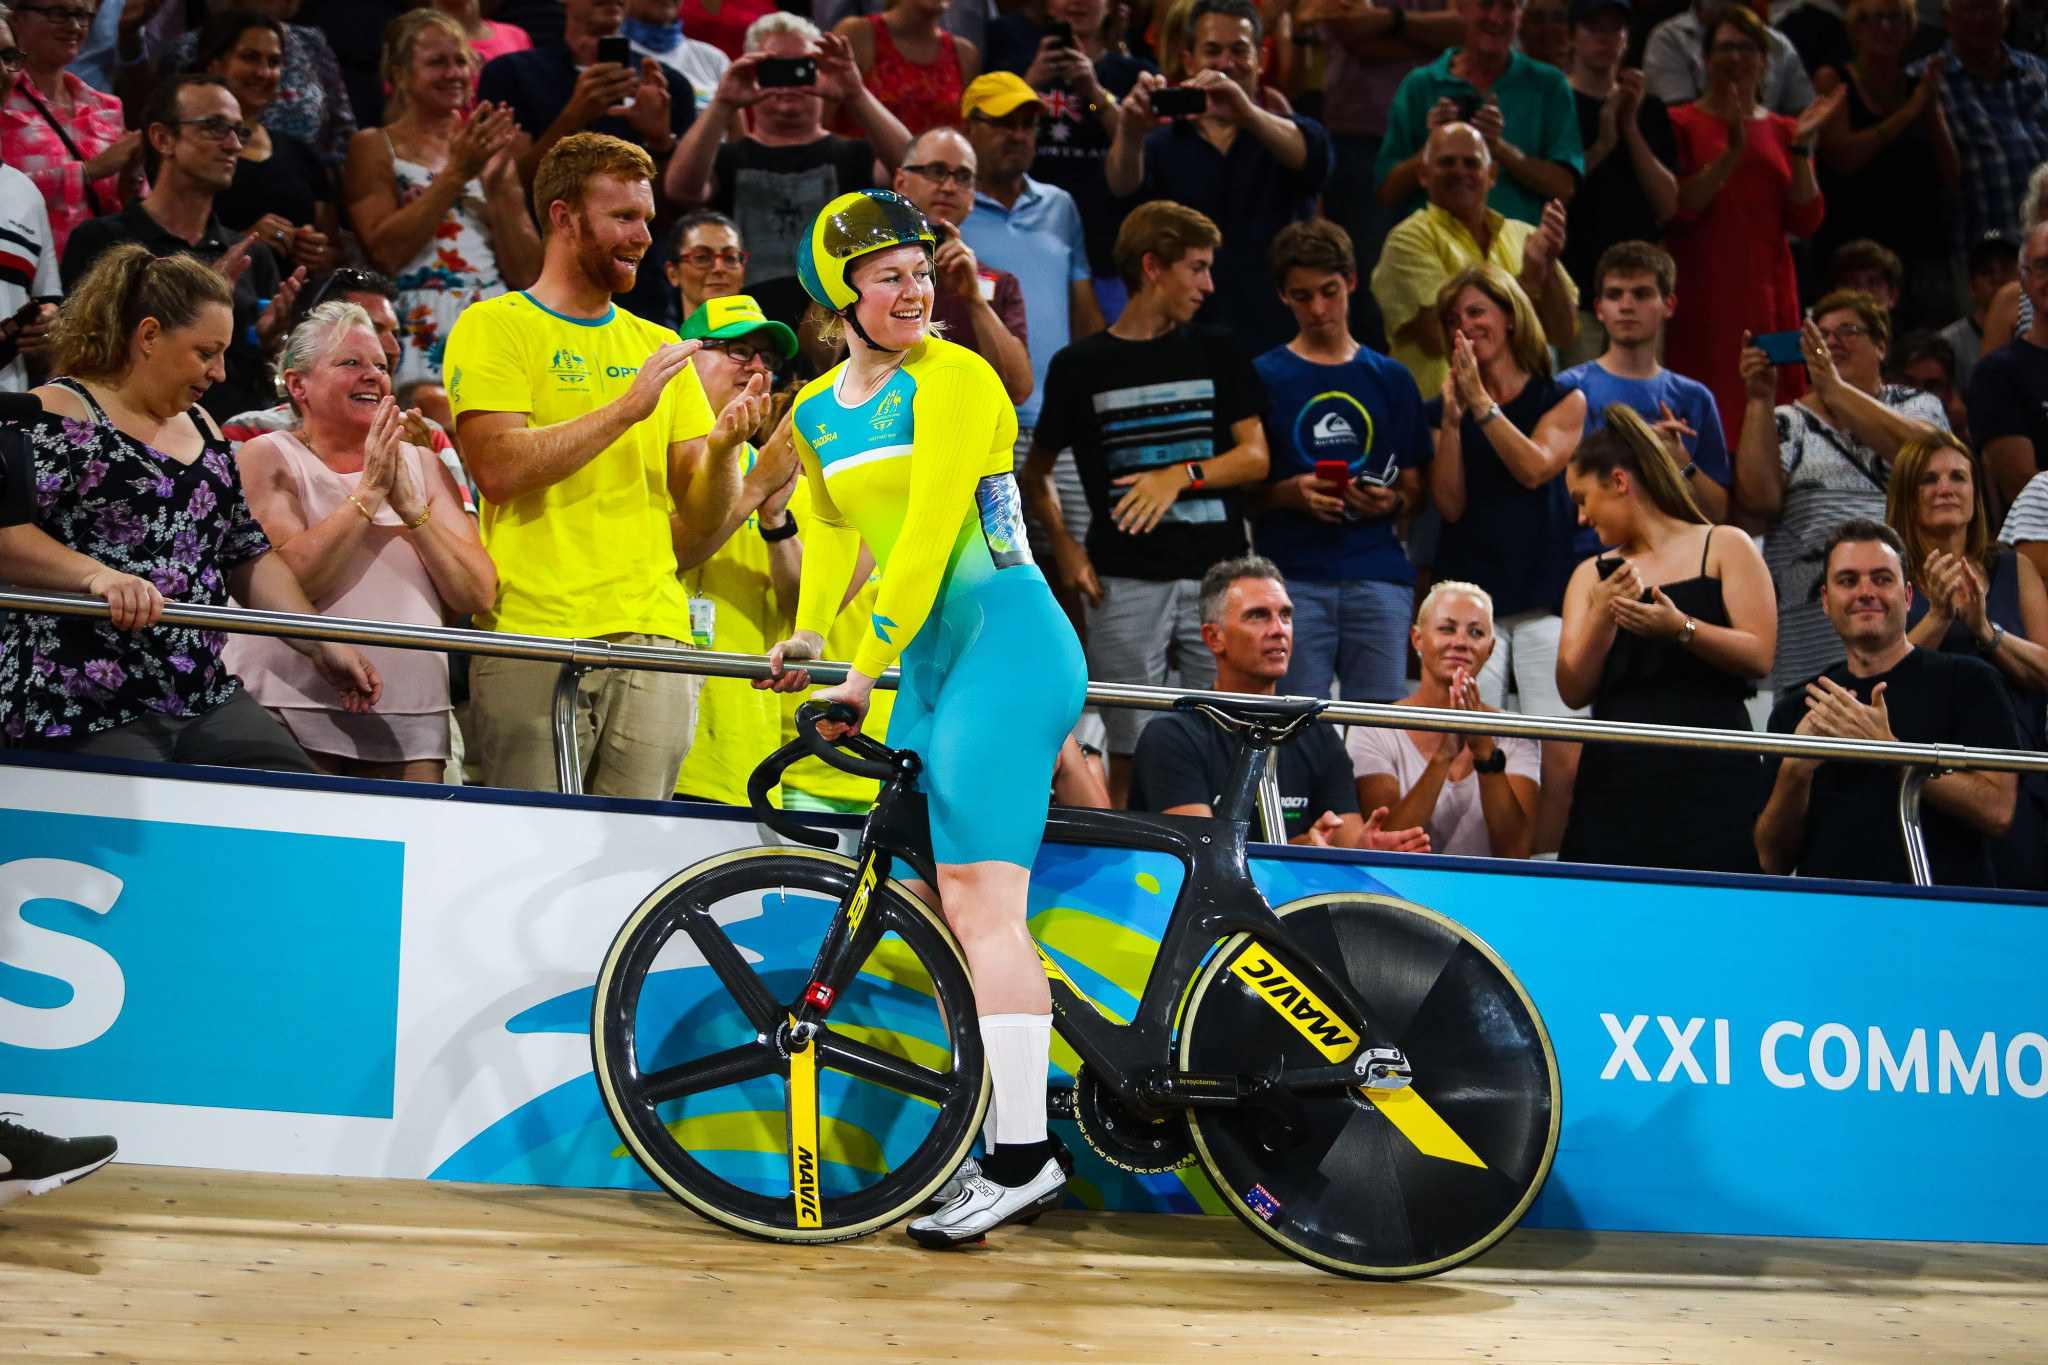 The Anna Meares Velodrome used at April's Commonwealth Games will also feature ©Getty Images